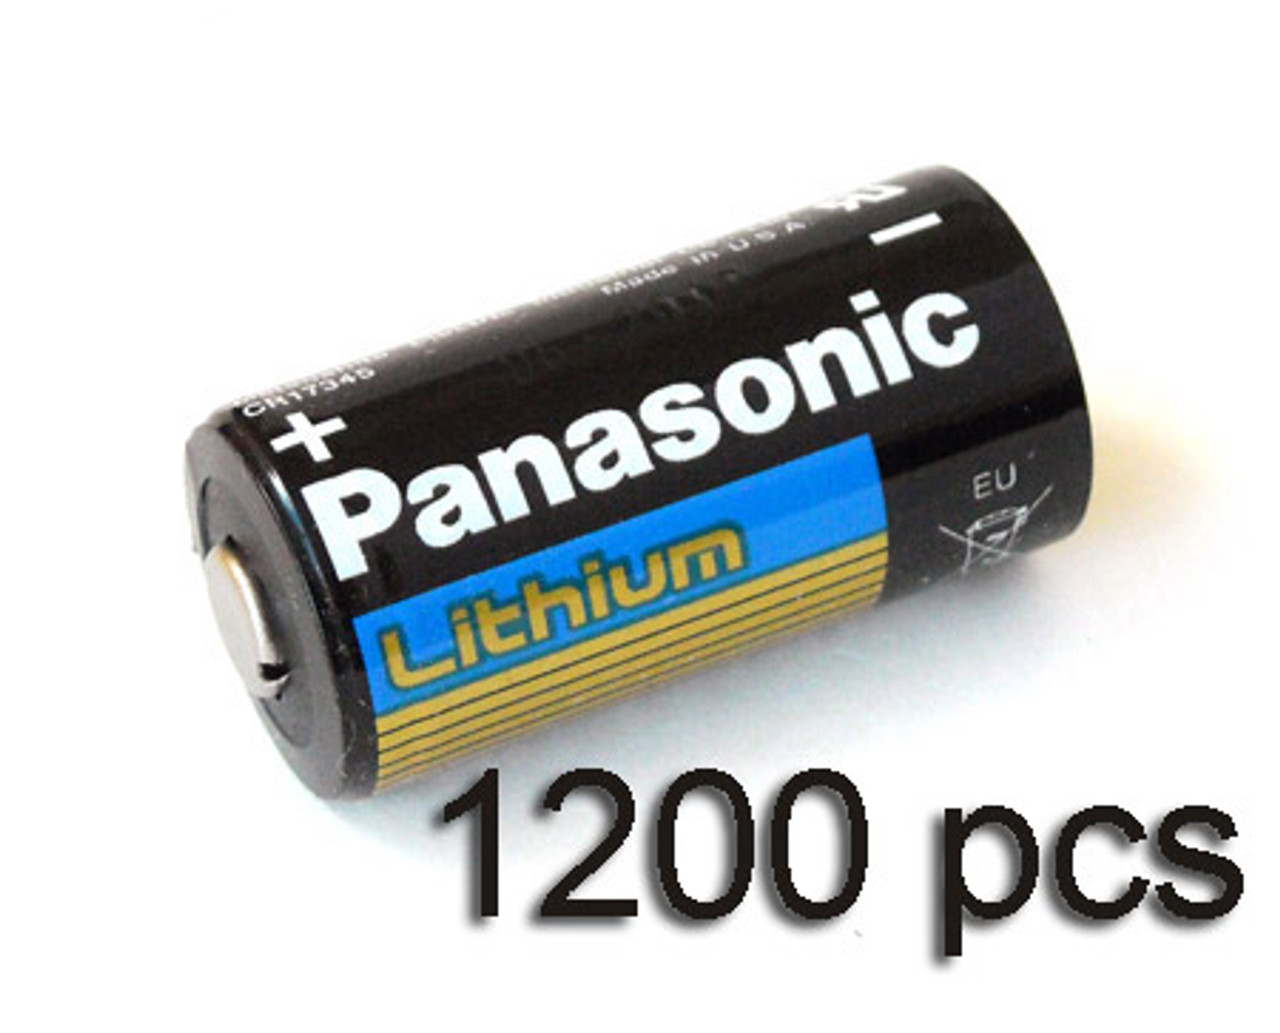 1200 pcs of Panasonic Lithium CR123A 3V Batteries